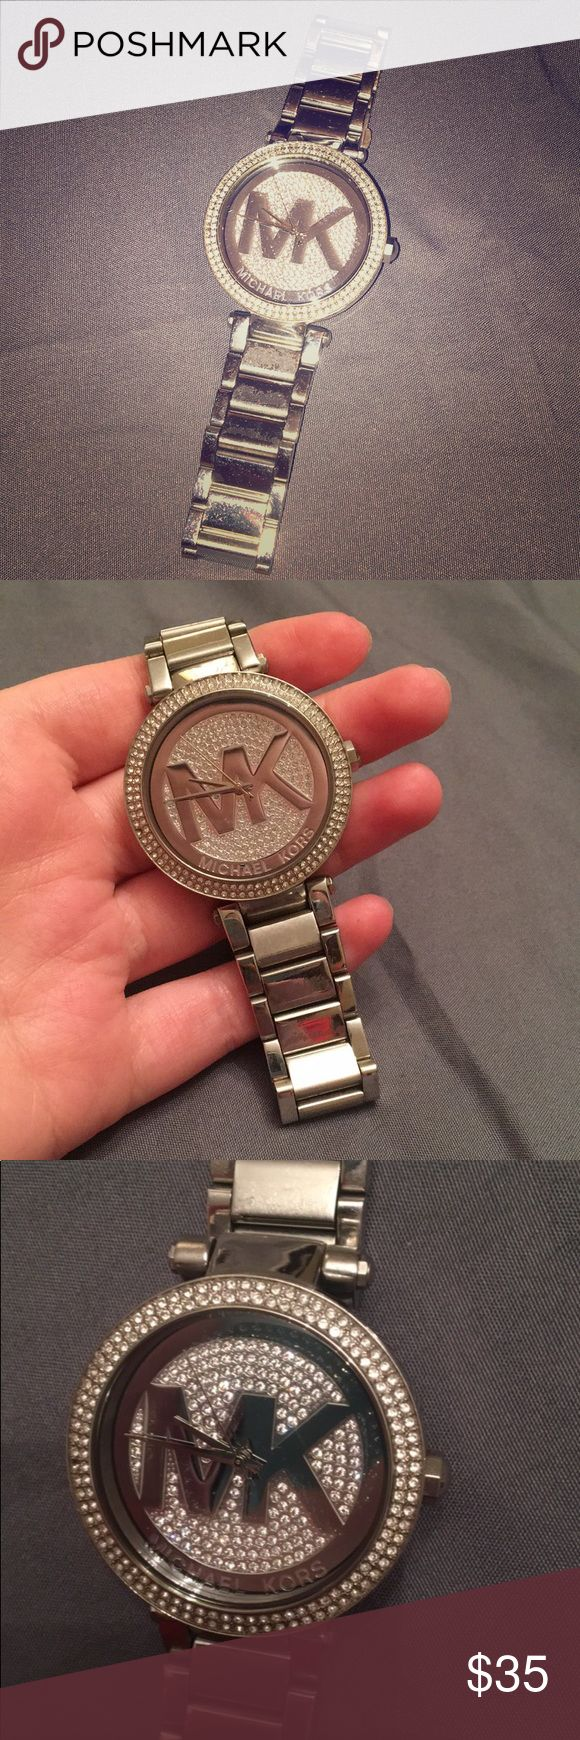 Michael Kors Silver Watch Stainless Steel Michael Kors Watch. Has wear on the inside and of the band but is not noticeable while wearing. Very cute watch and works good, just needs new batteries! Michael Kors Accessories Watches